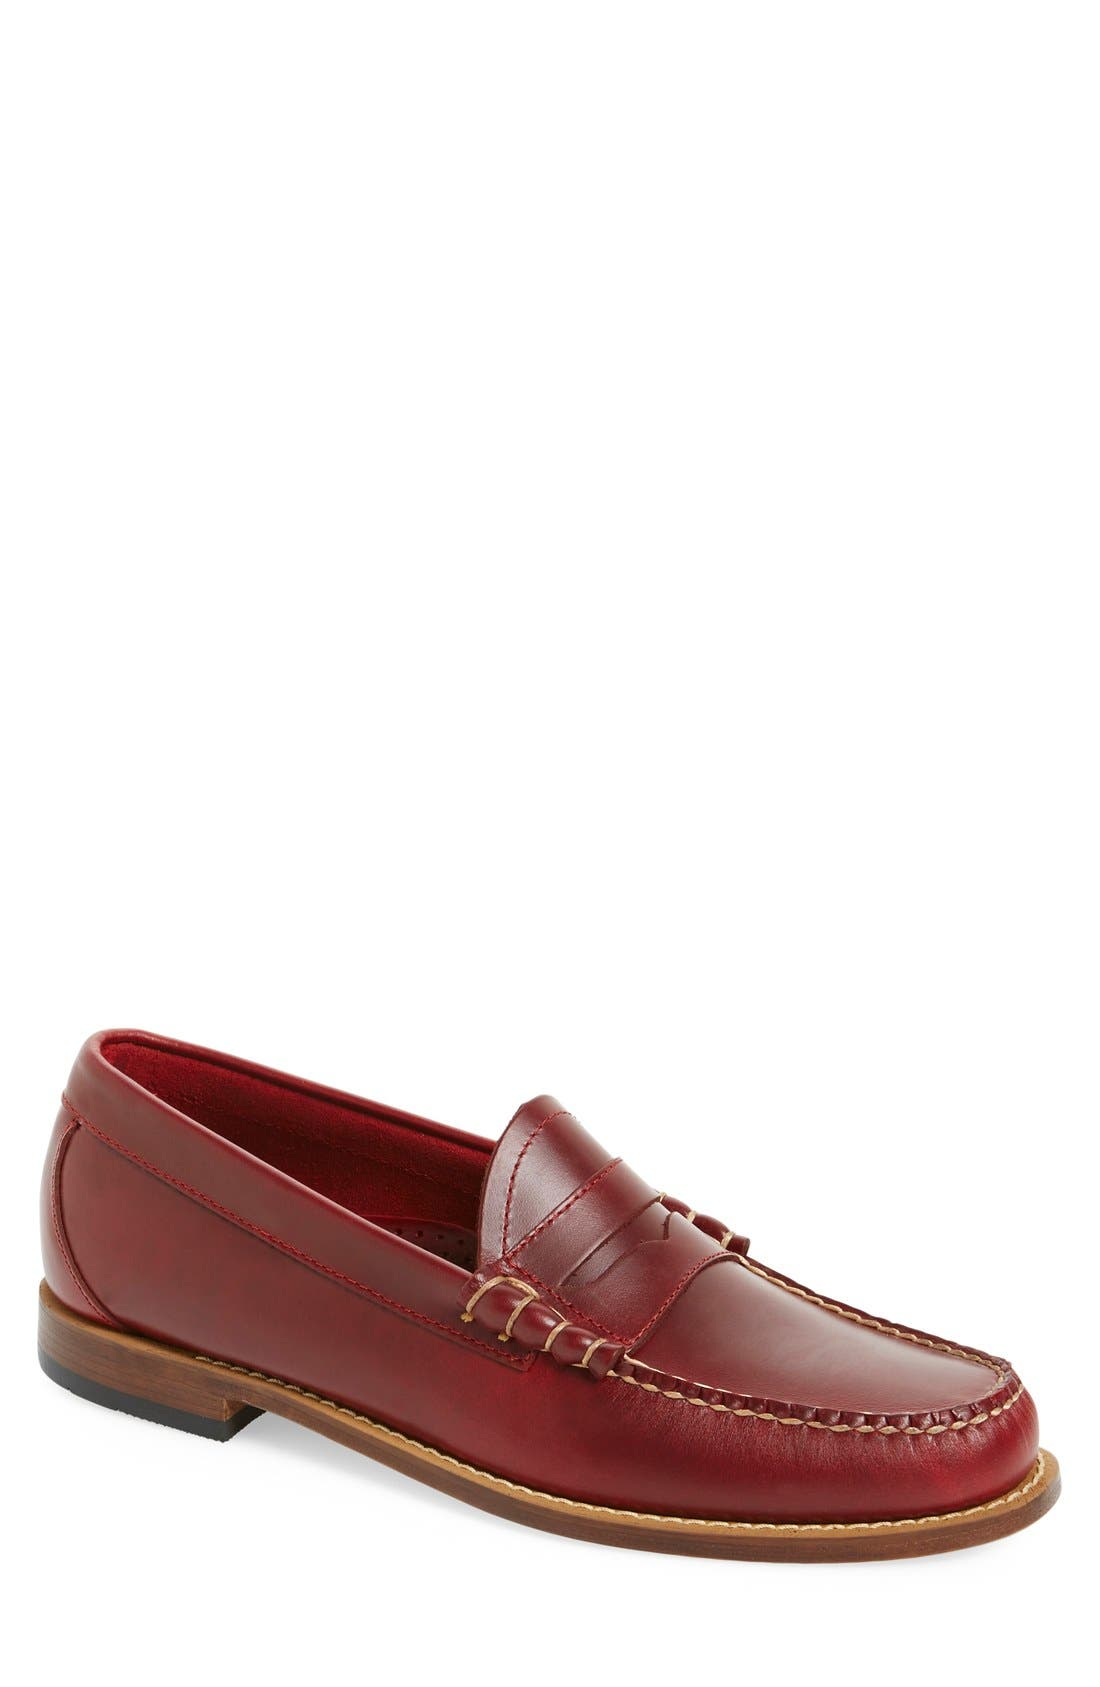 Main Image - G.H. Bass & Co. 'Larson - Weejuns' Penny Loafer (Men)